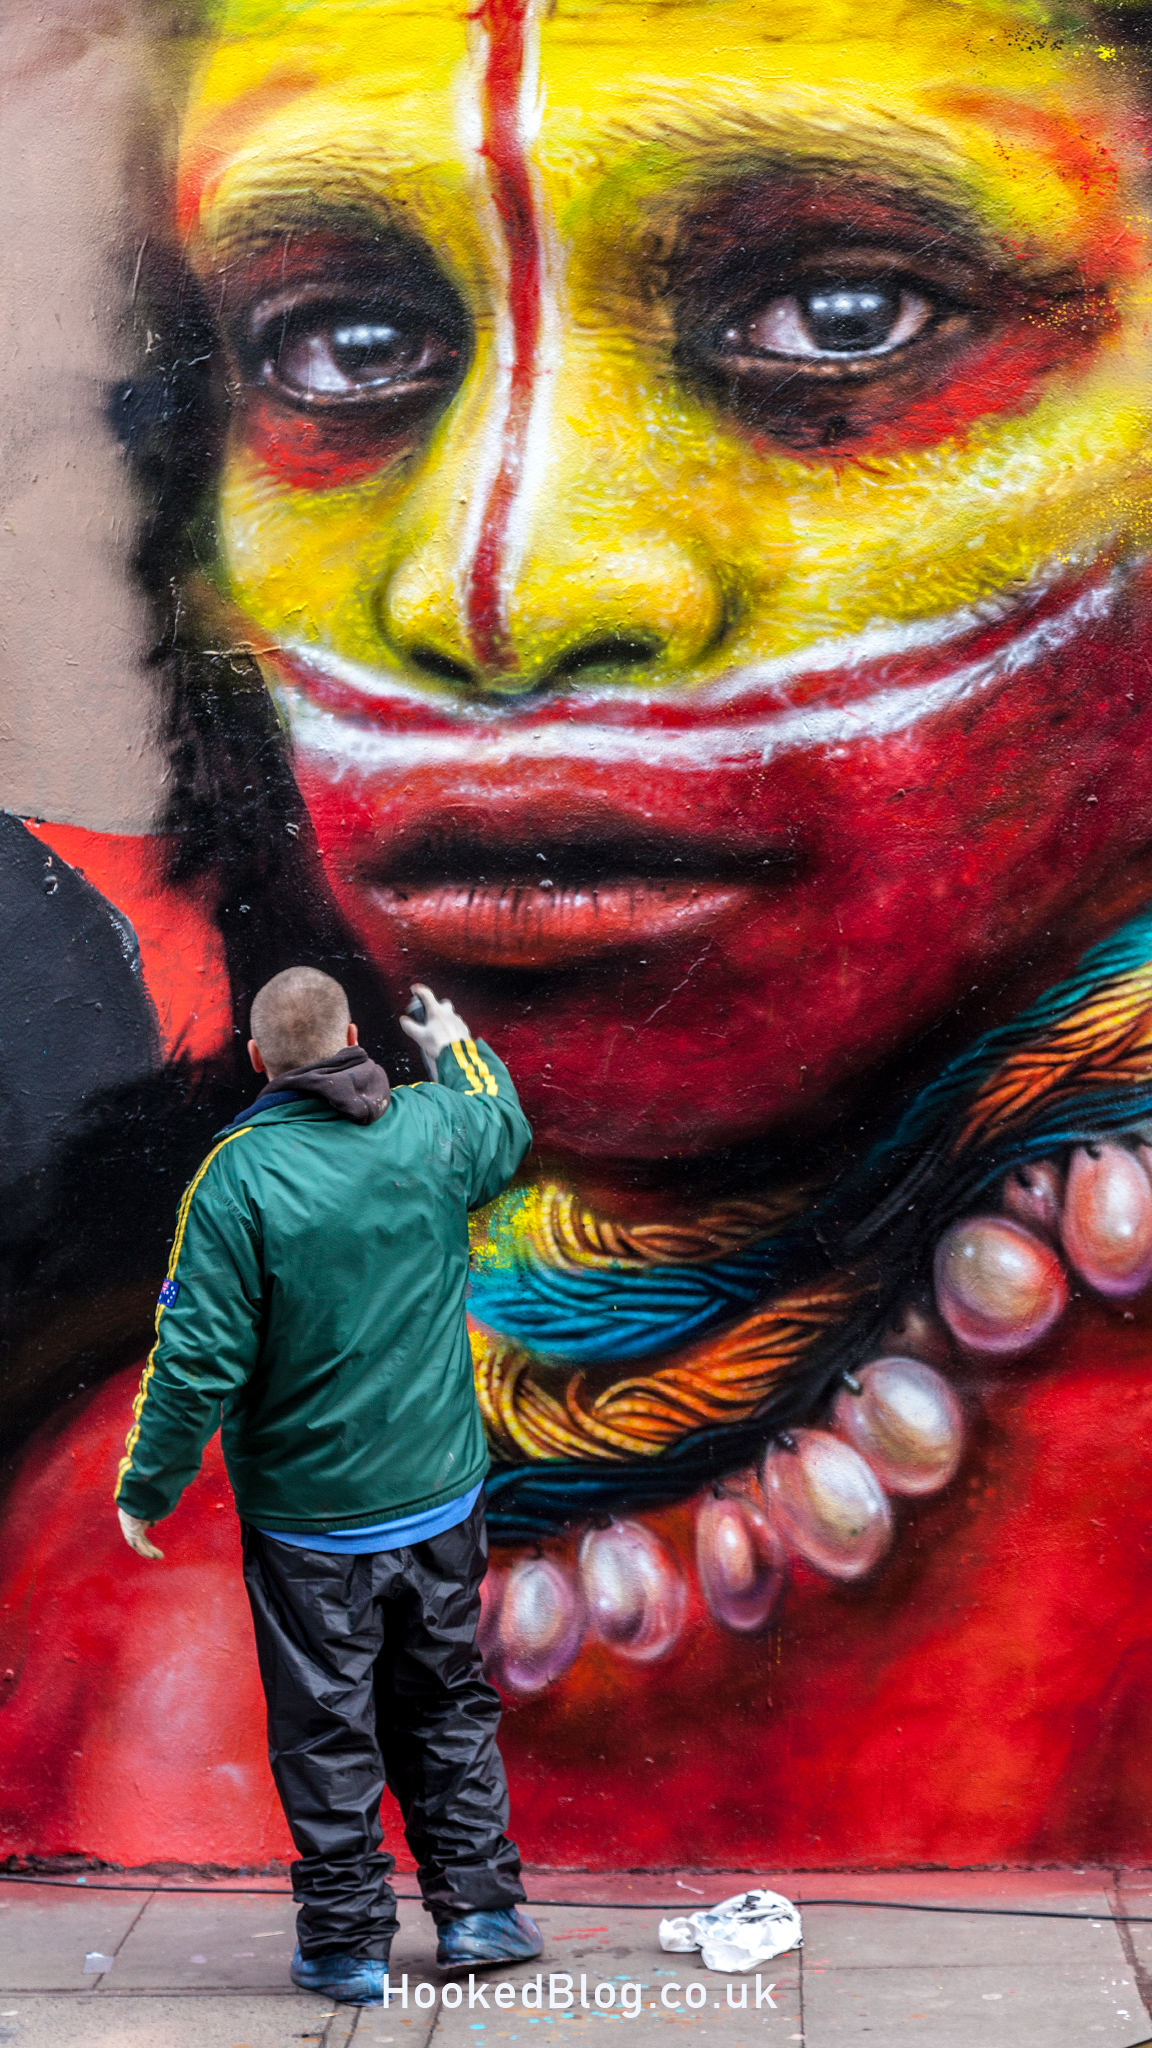 Magnificent Mural on Hanbury Street, London by street artist Dale Grimshaw. #streetart #mural #Hookedblog